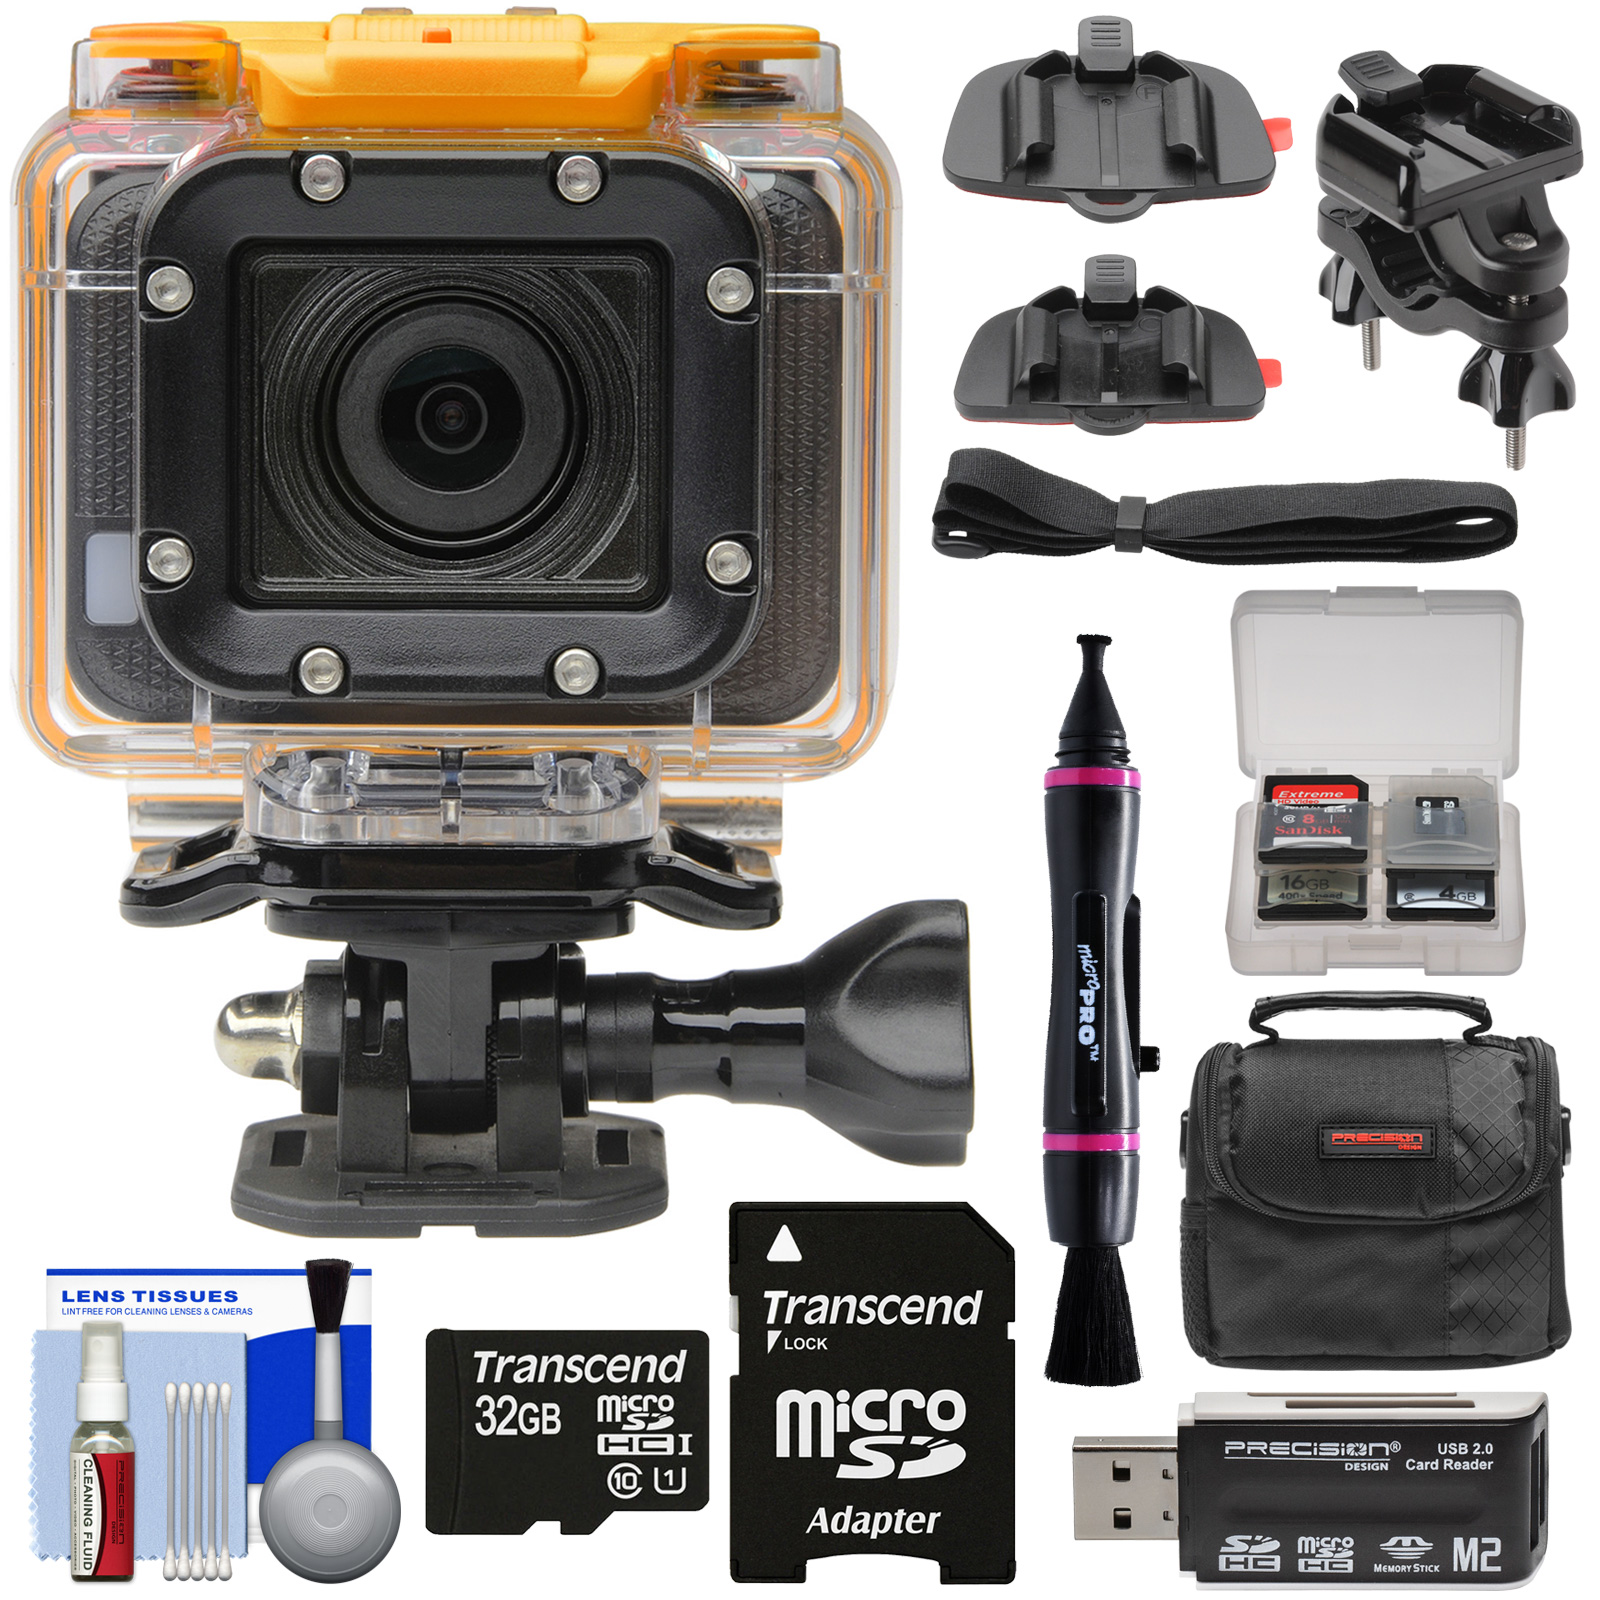 HP AC300w 1080p HD Wi-Fi Action Camera Camcorder - Refurbished with Action Mounts + 32GB Card + Case + Kit